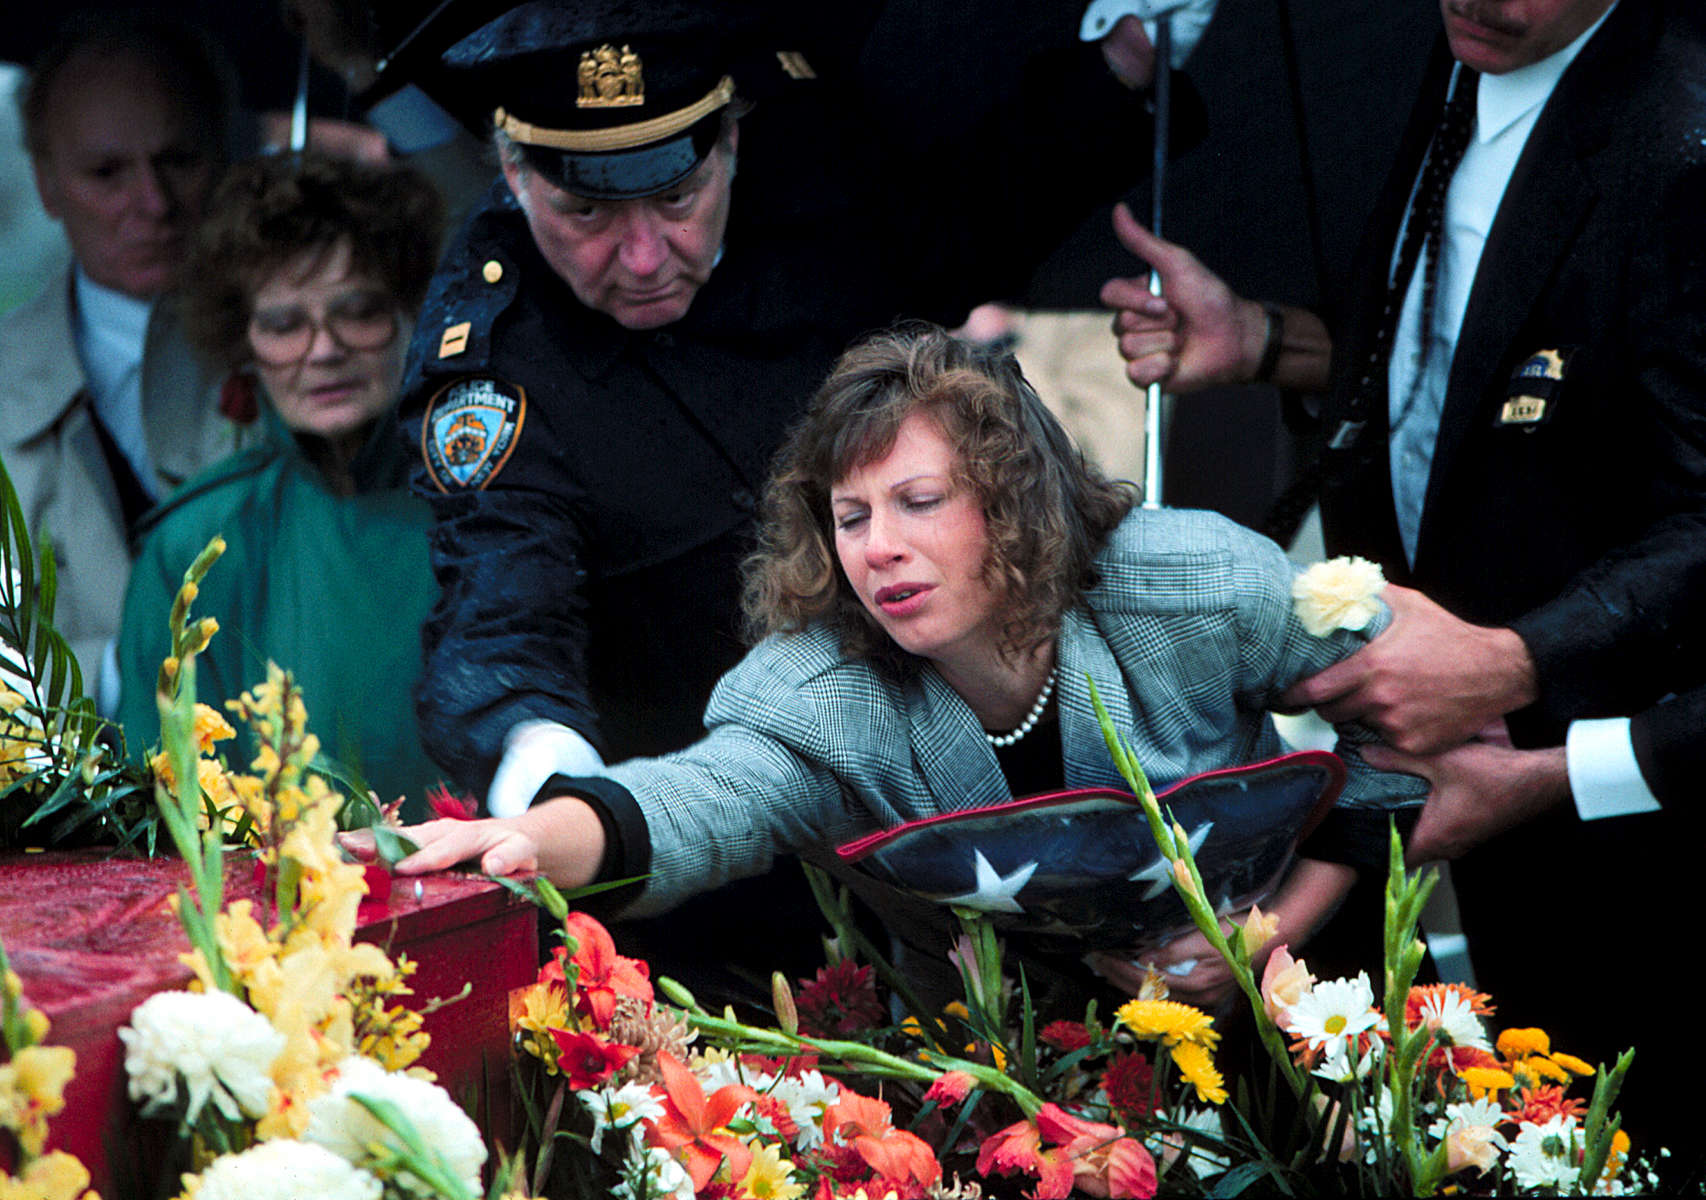 NYC Police Officer funeral – February, 2003